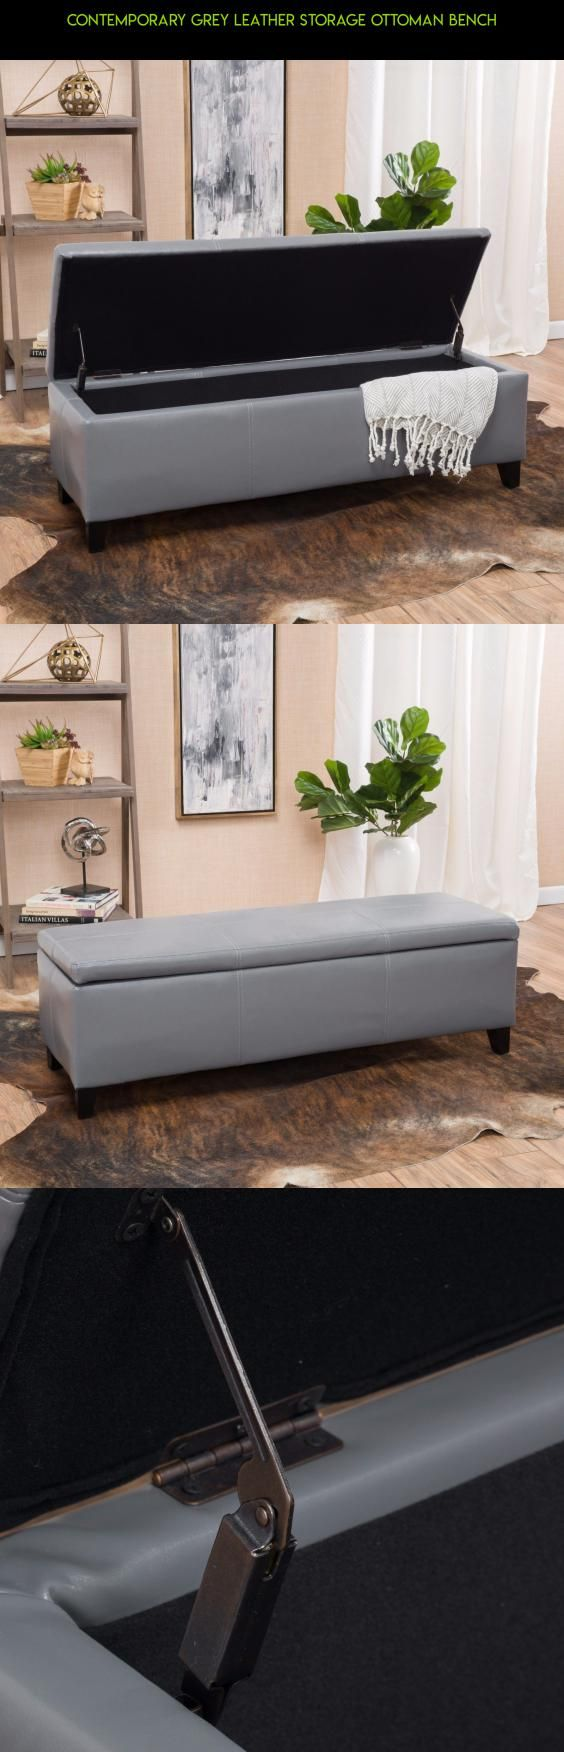 Storage Ottoman Plans Best 25 Storage Ottoman Bench Ideas On Pinterest Small Storage